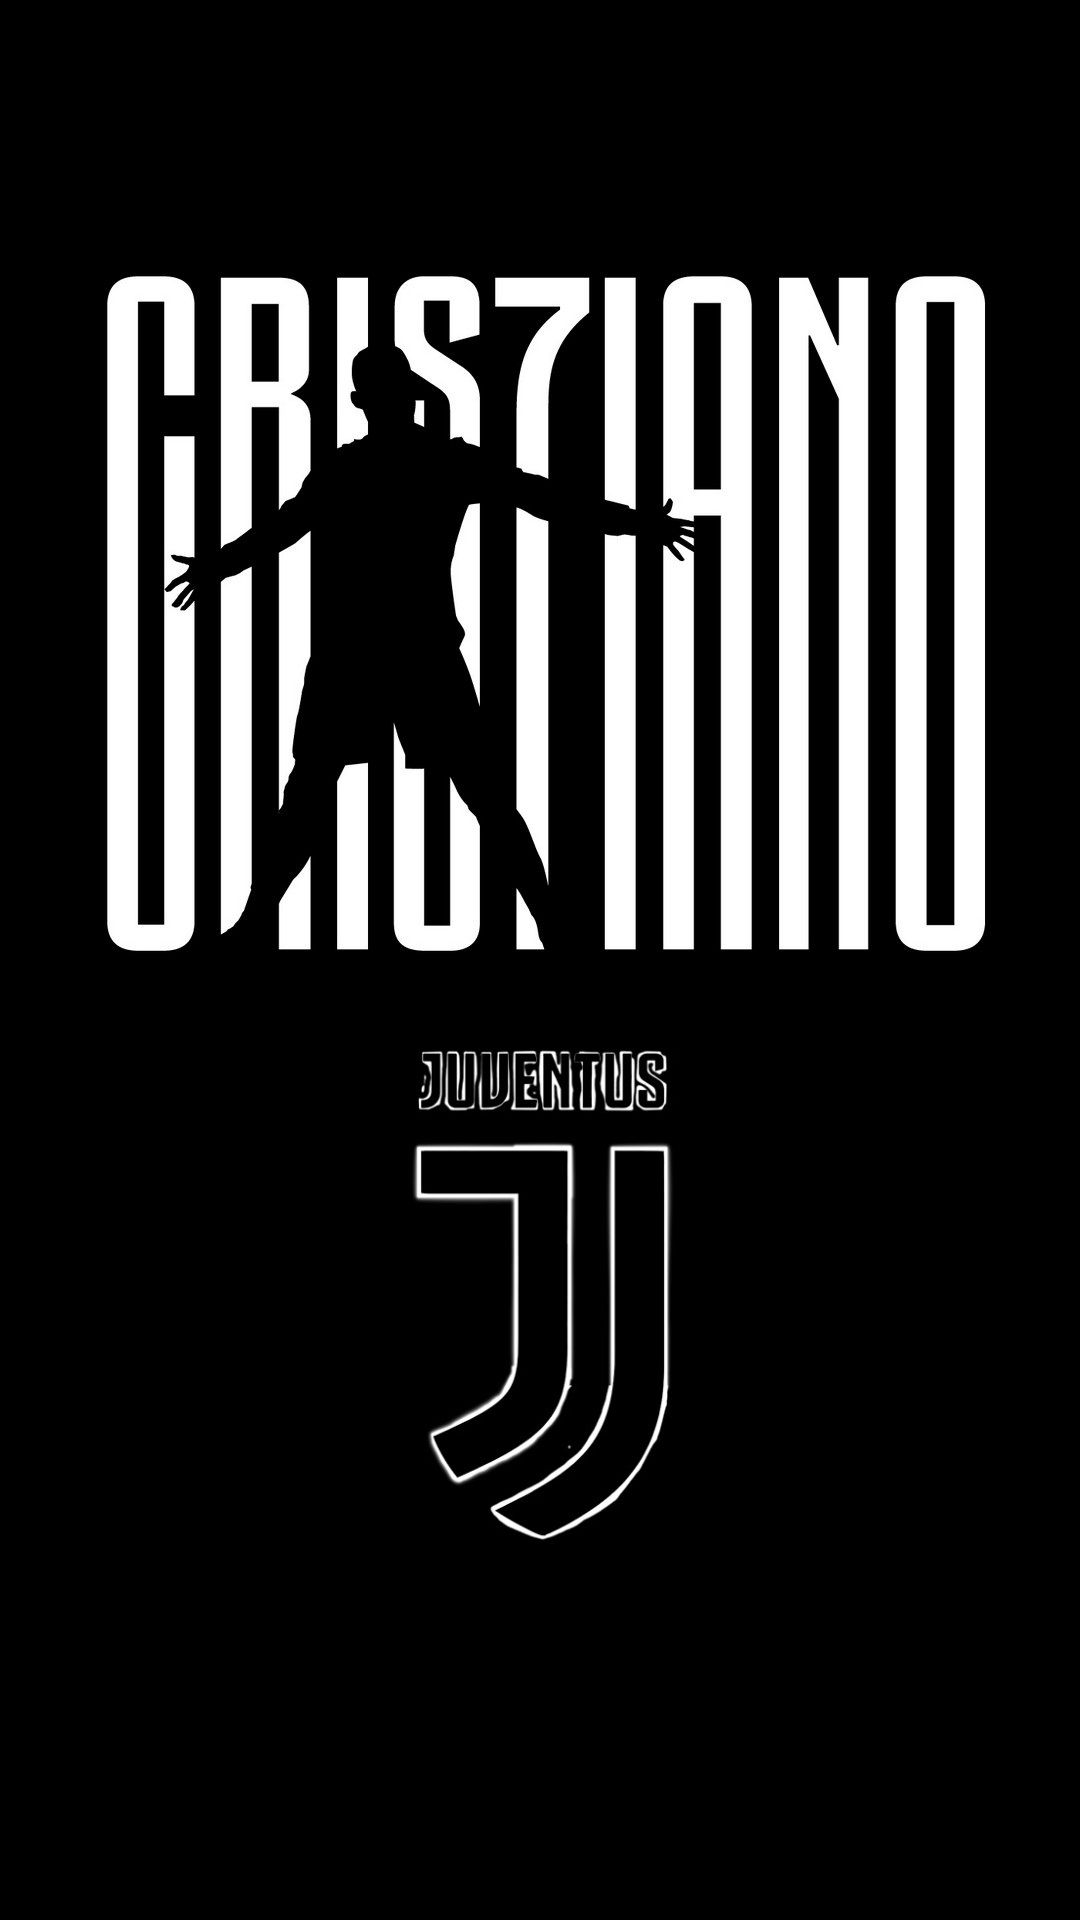 23 Juventus 2019 Wallpapers On Wallpapersafari